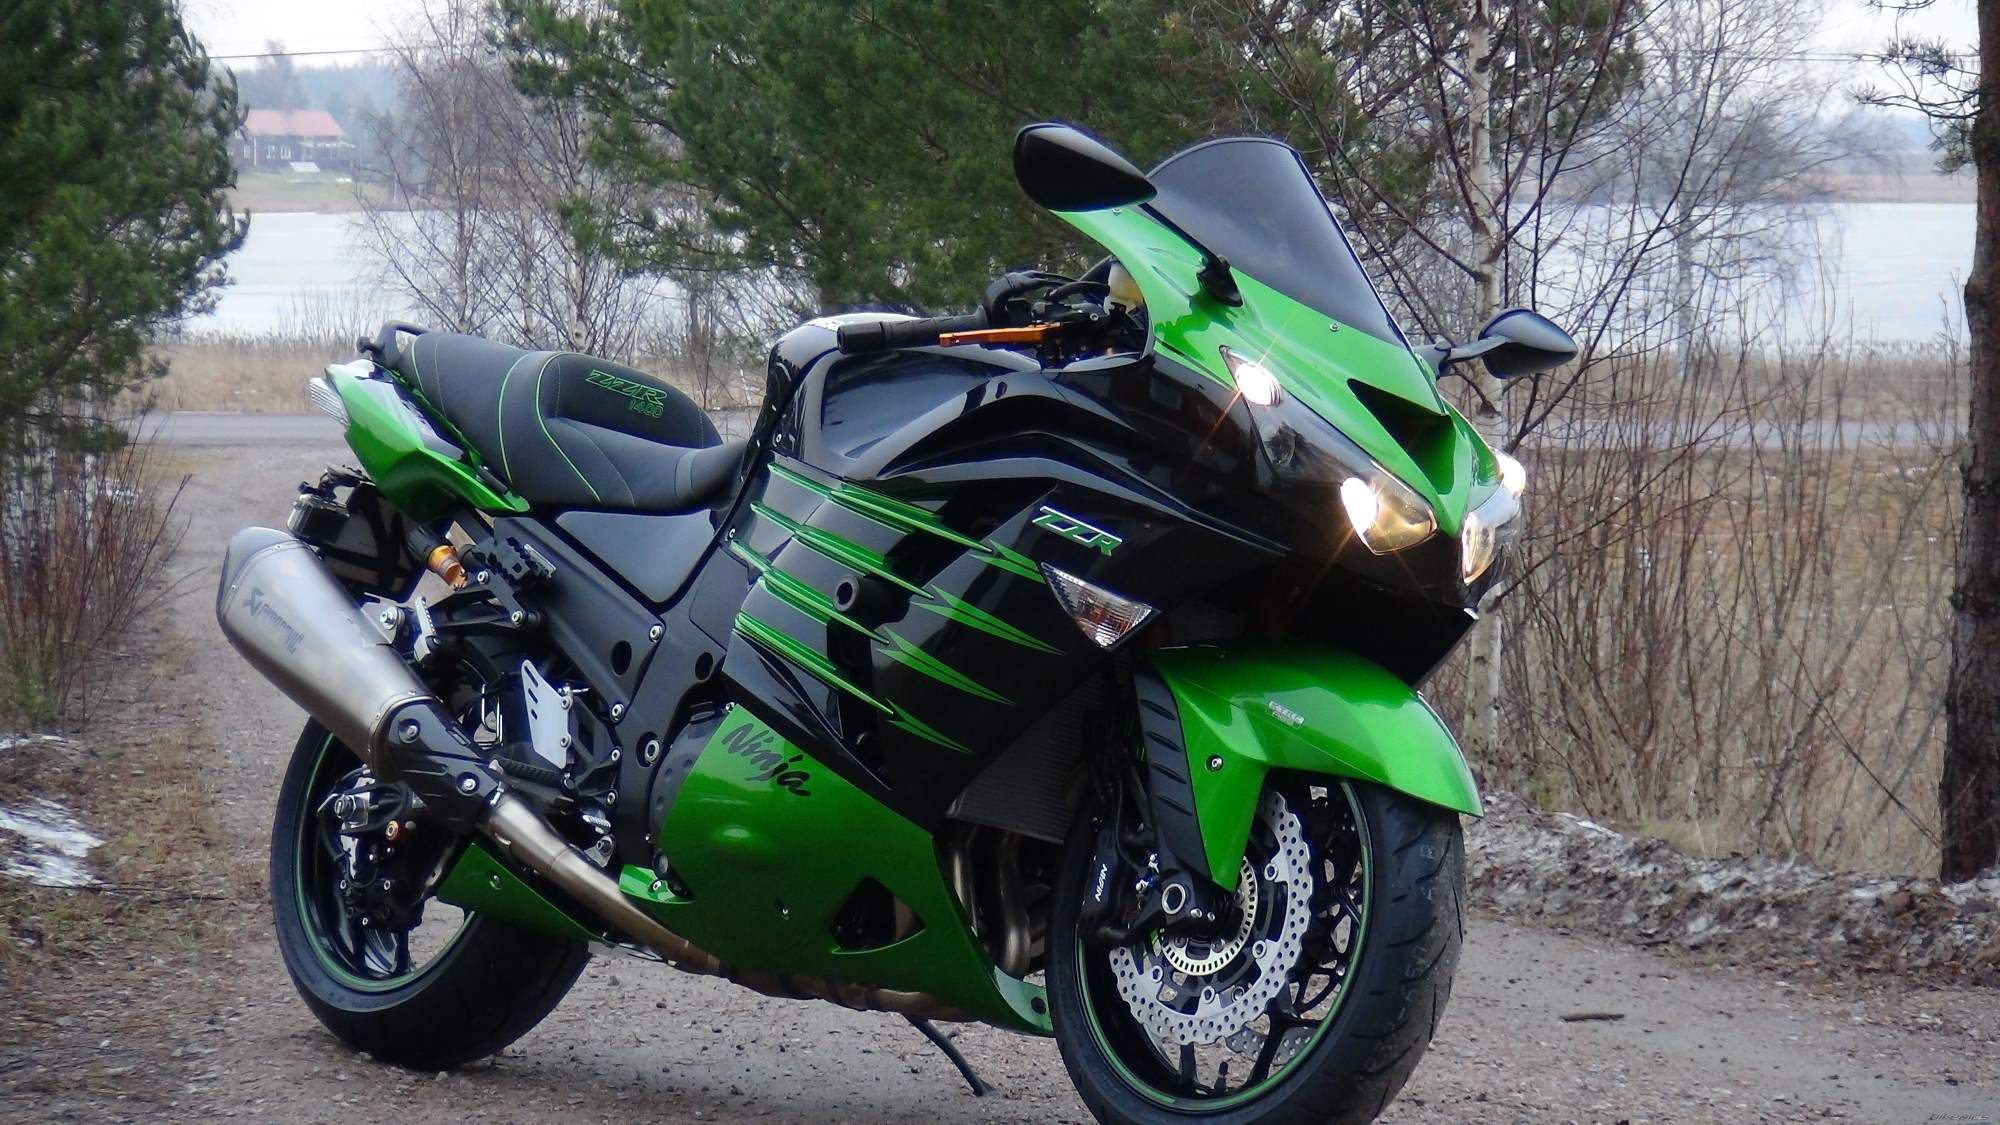 Delicieux New Bike On The Road Kawasaki ZZR 1400 Wallpapers And Images